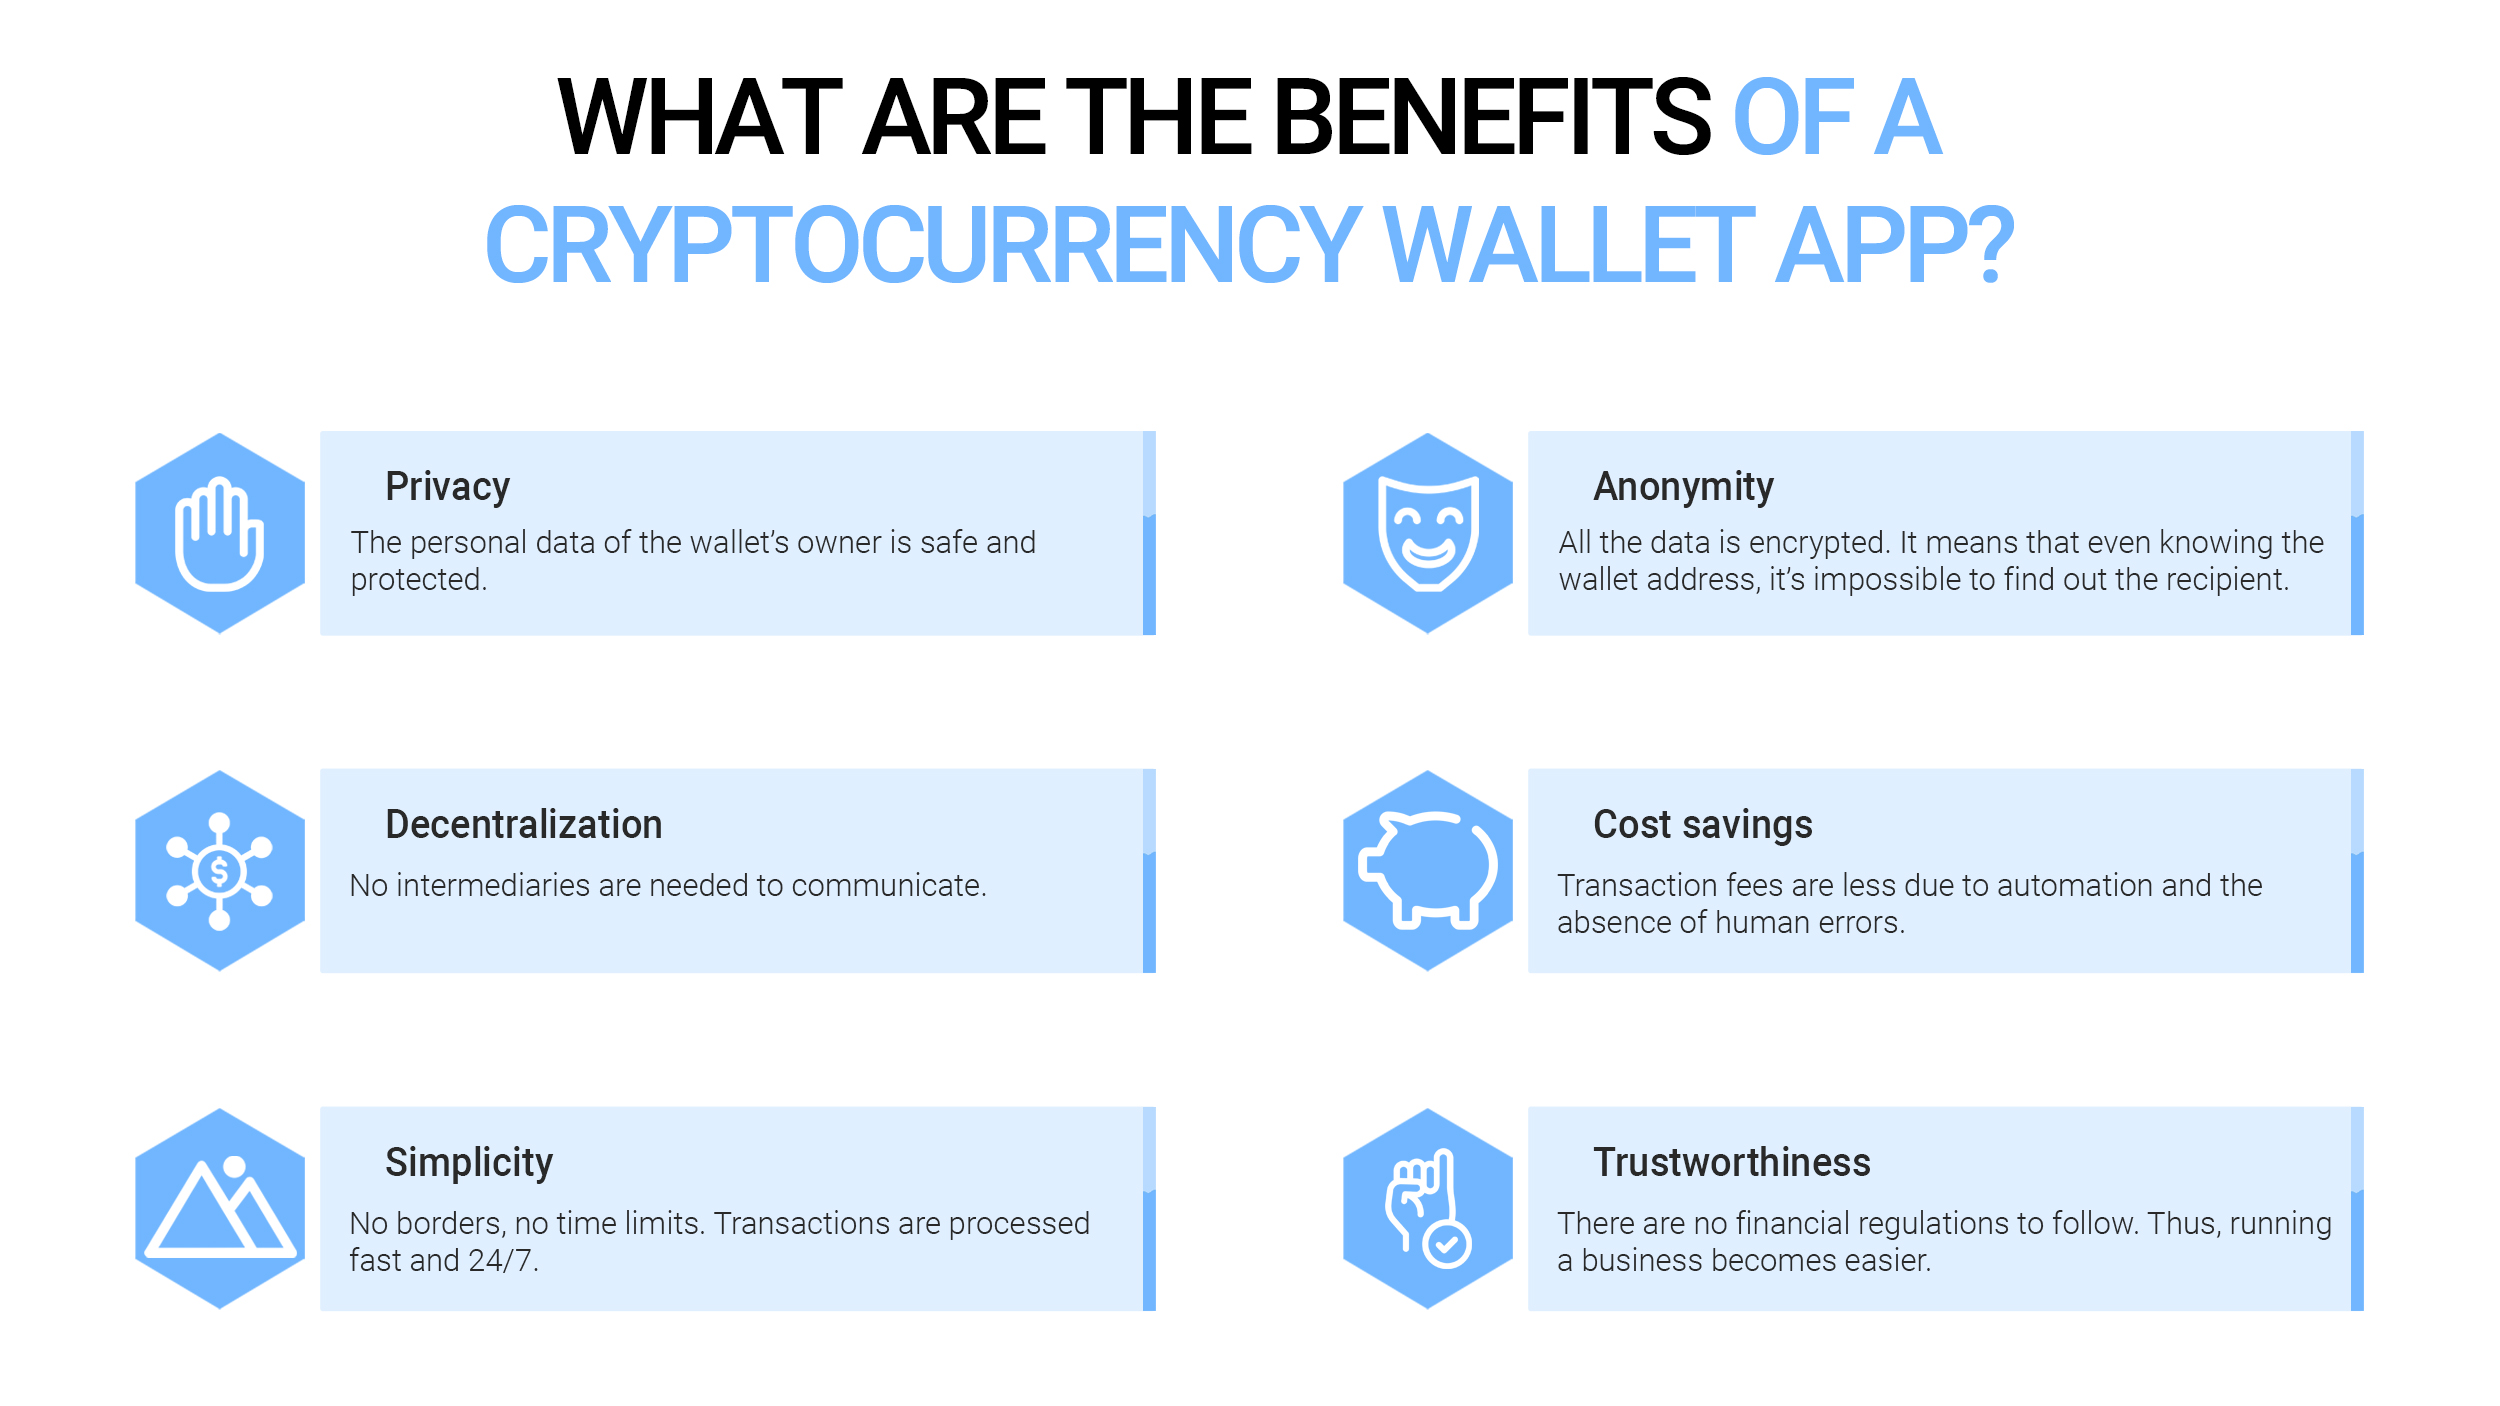 What are the benefits of a cryptocurrency wallet app